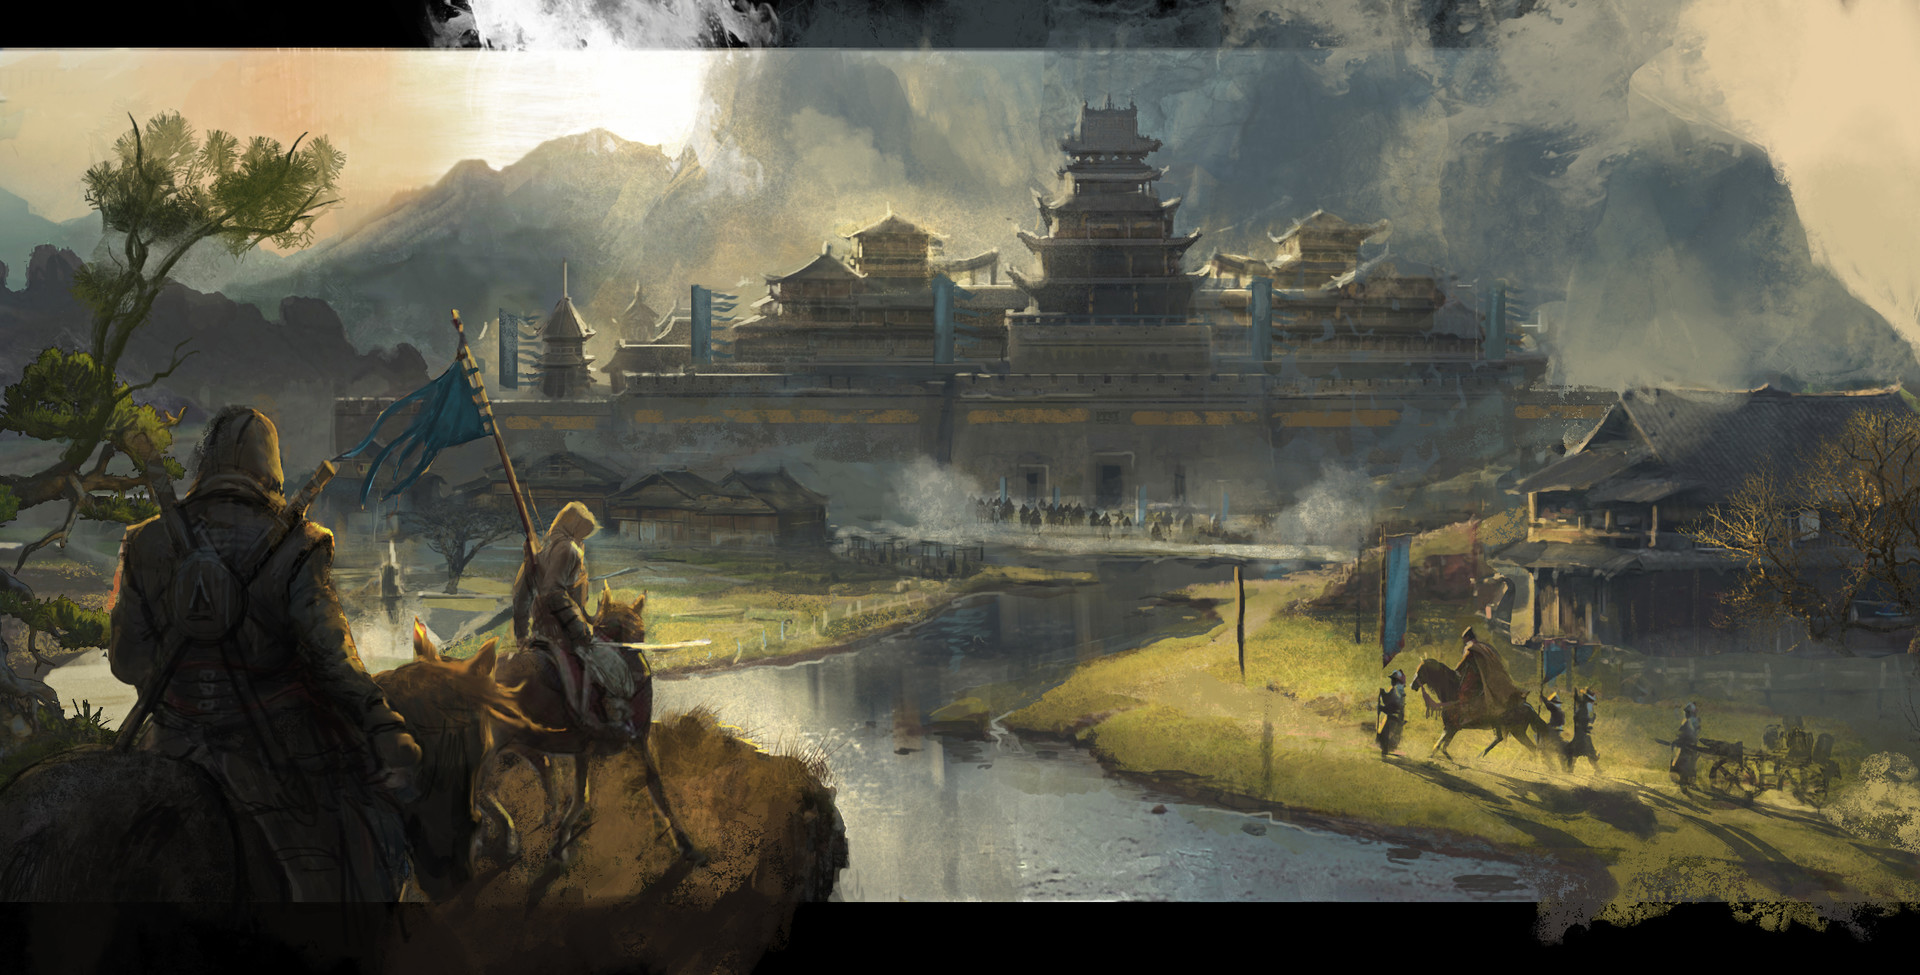 Concept art for an Assassin's Creed game set in China has surfaced online - VG247